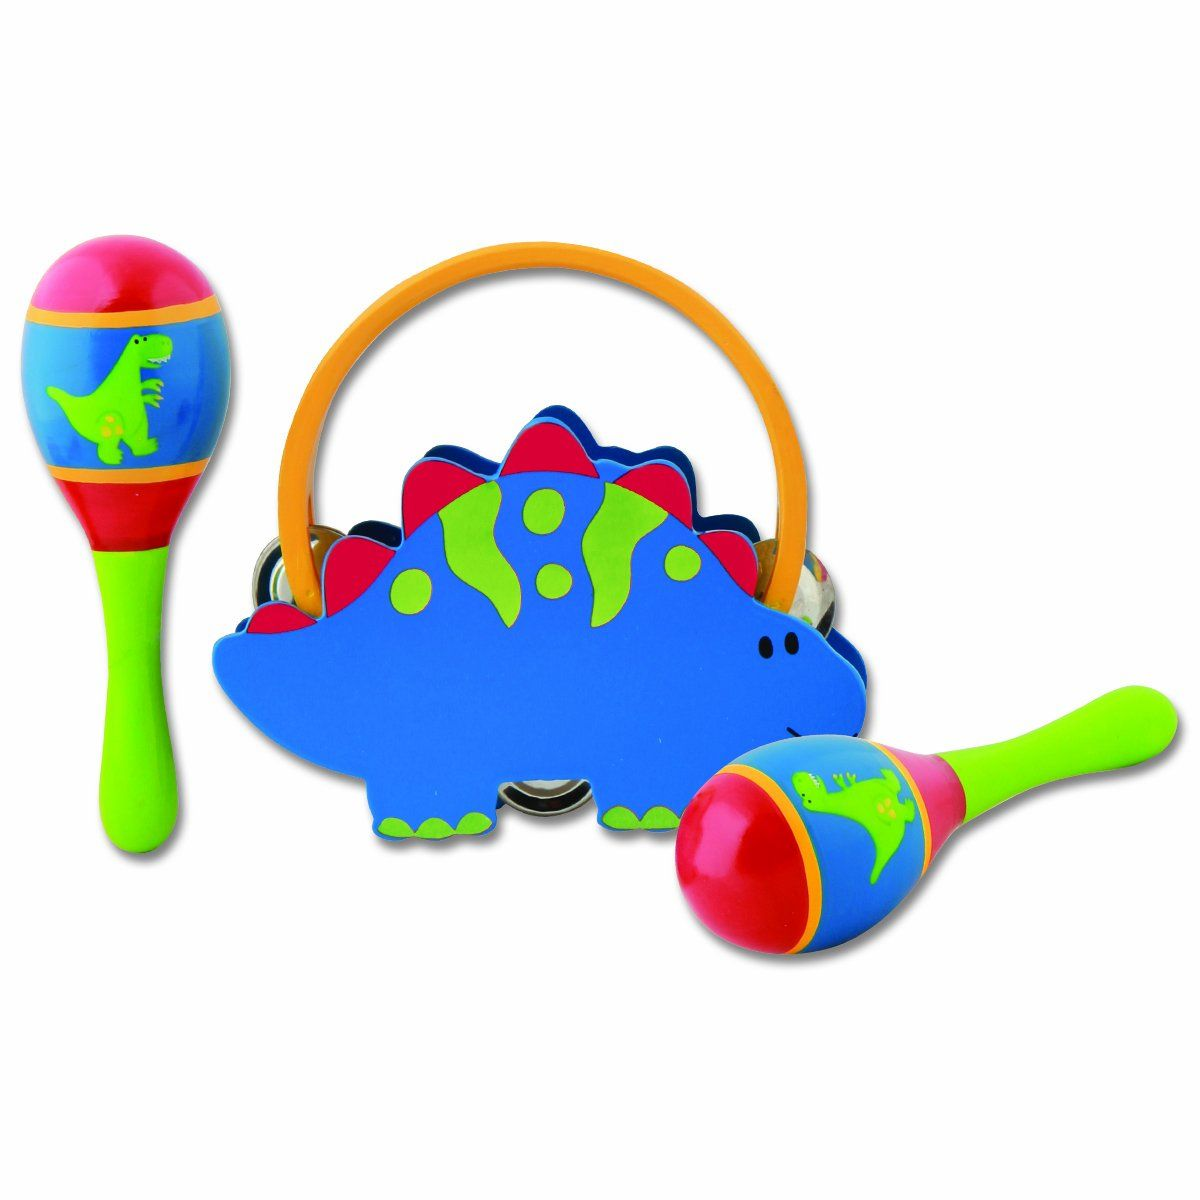 Stephen Joseph Percussion Set, Dino. Made of wood. Includes 2 maracas and 1 tambourine. Everyone will enjoy this classic toy with timeless appeal.